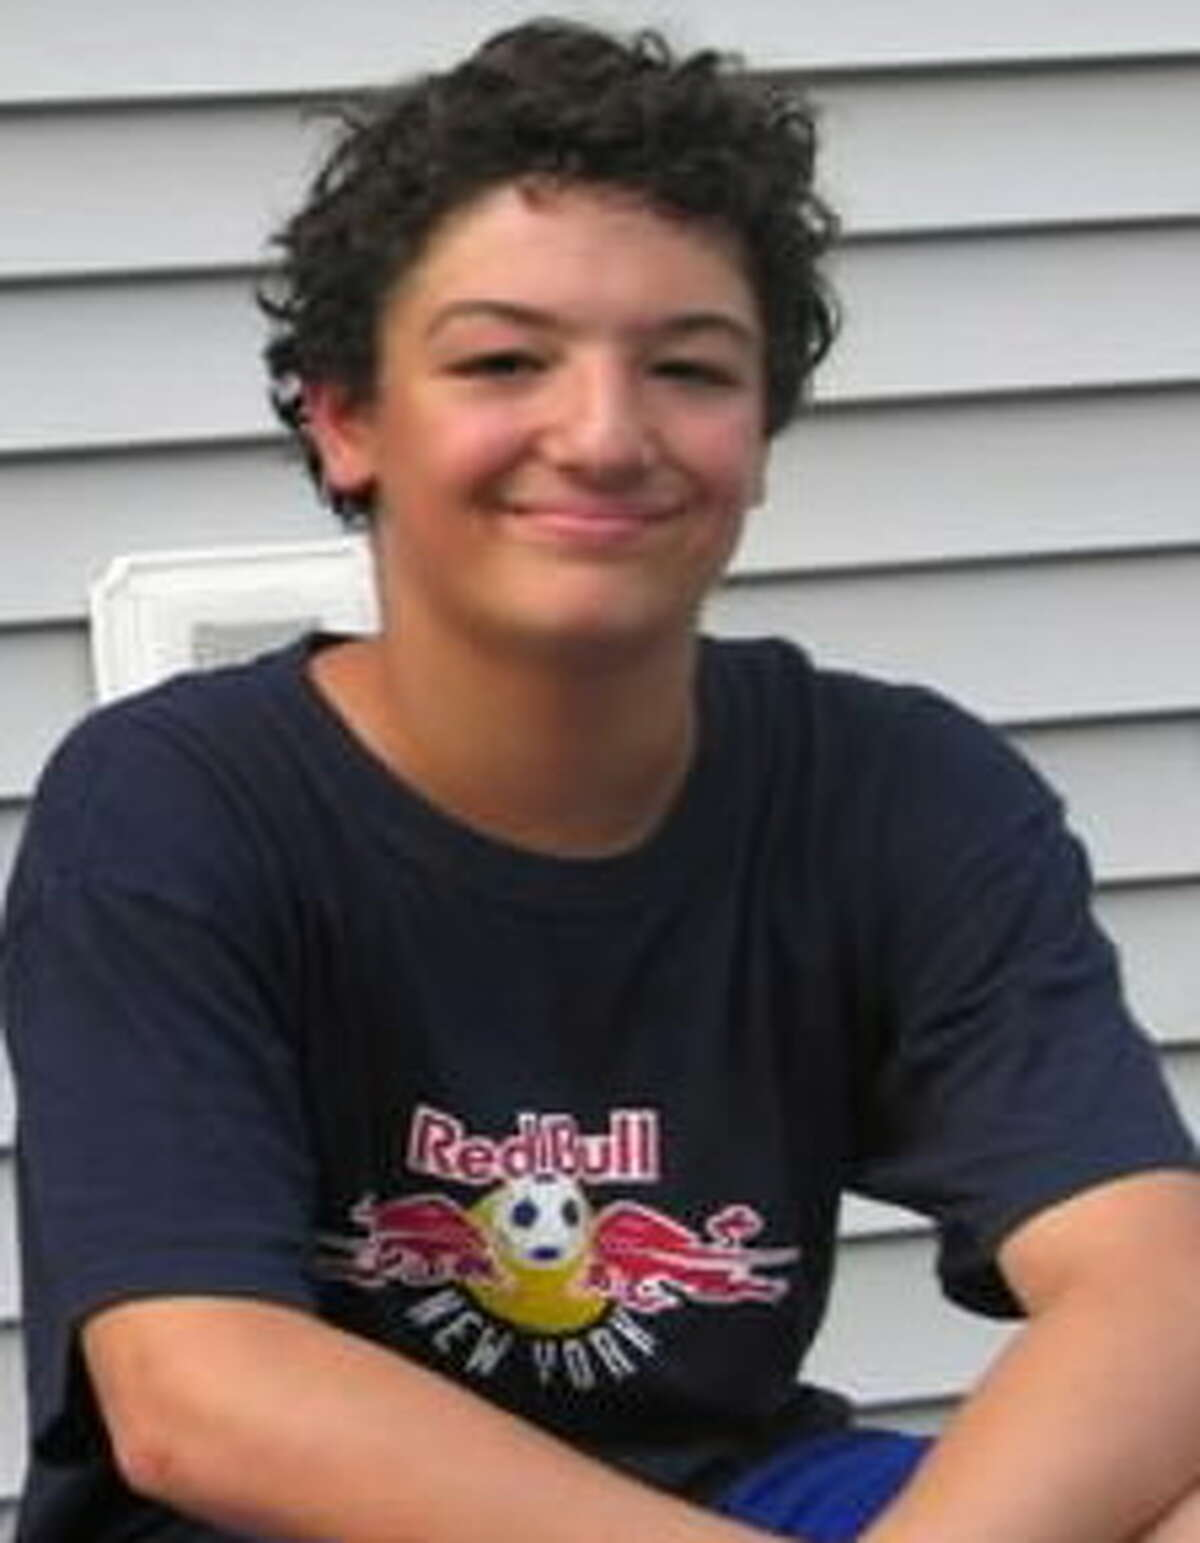 Nick Cammarata of Clifton Park was 12 when he found out he had leukemia in the summer of 2008 and he died just four months later. Now his family and community remember him with Nick's Fight to be Healed Foundation, which holds Nick's Run every year to help other children and teens who are facing a cancer diagnosis.